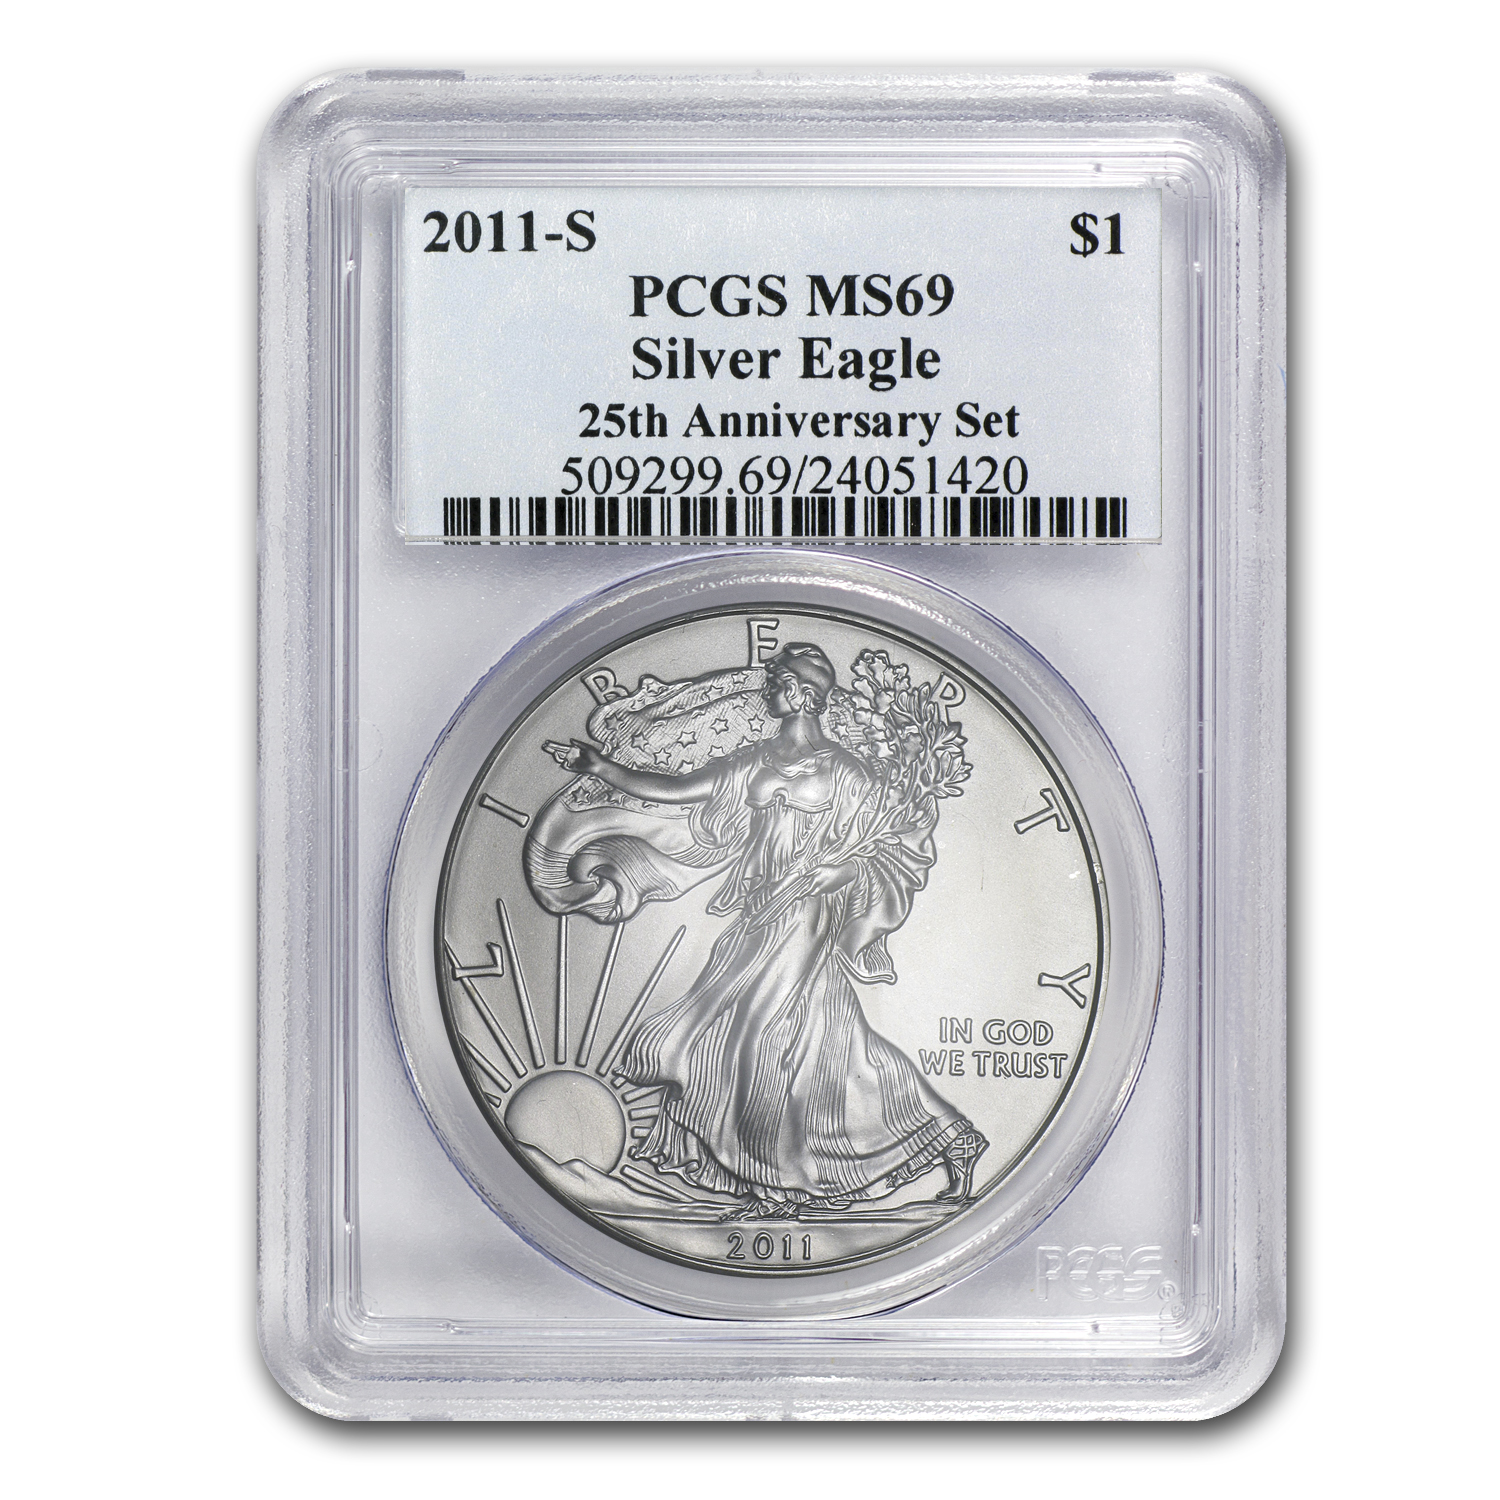 2011-S Silver Eagle 25th Anniversary MS-69 PCGS